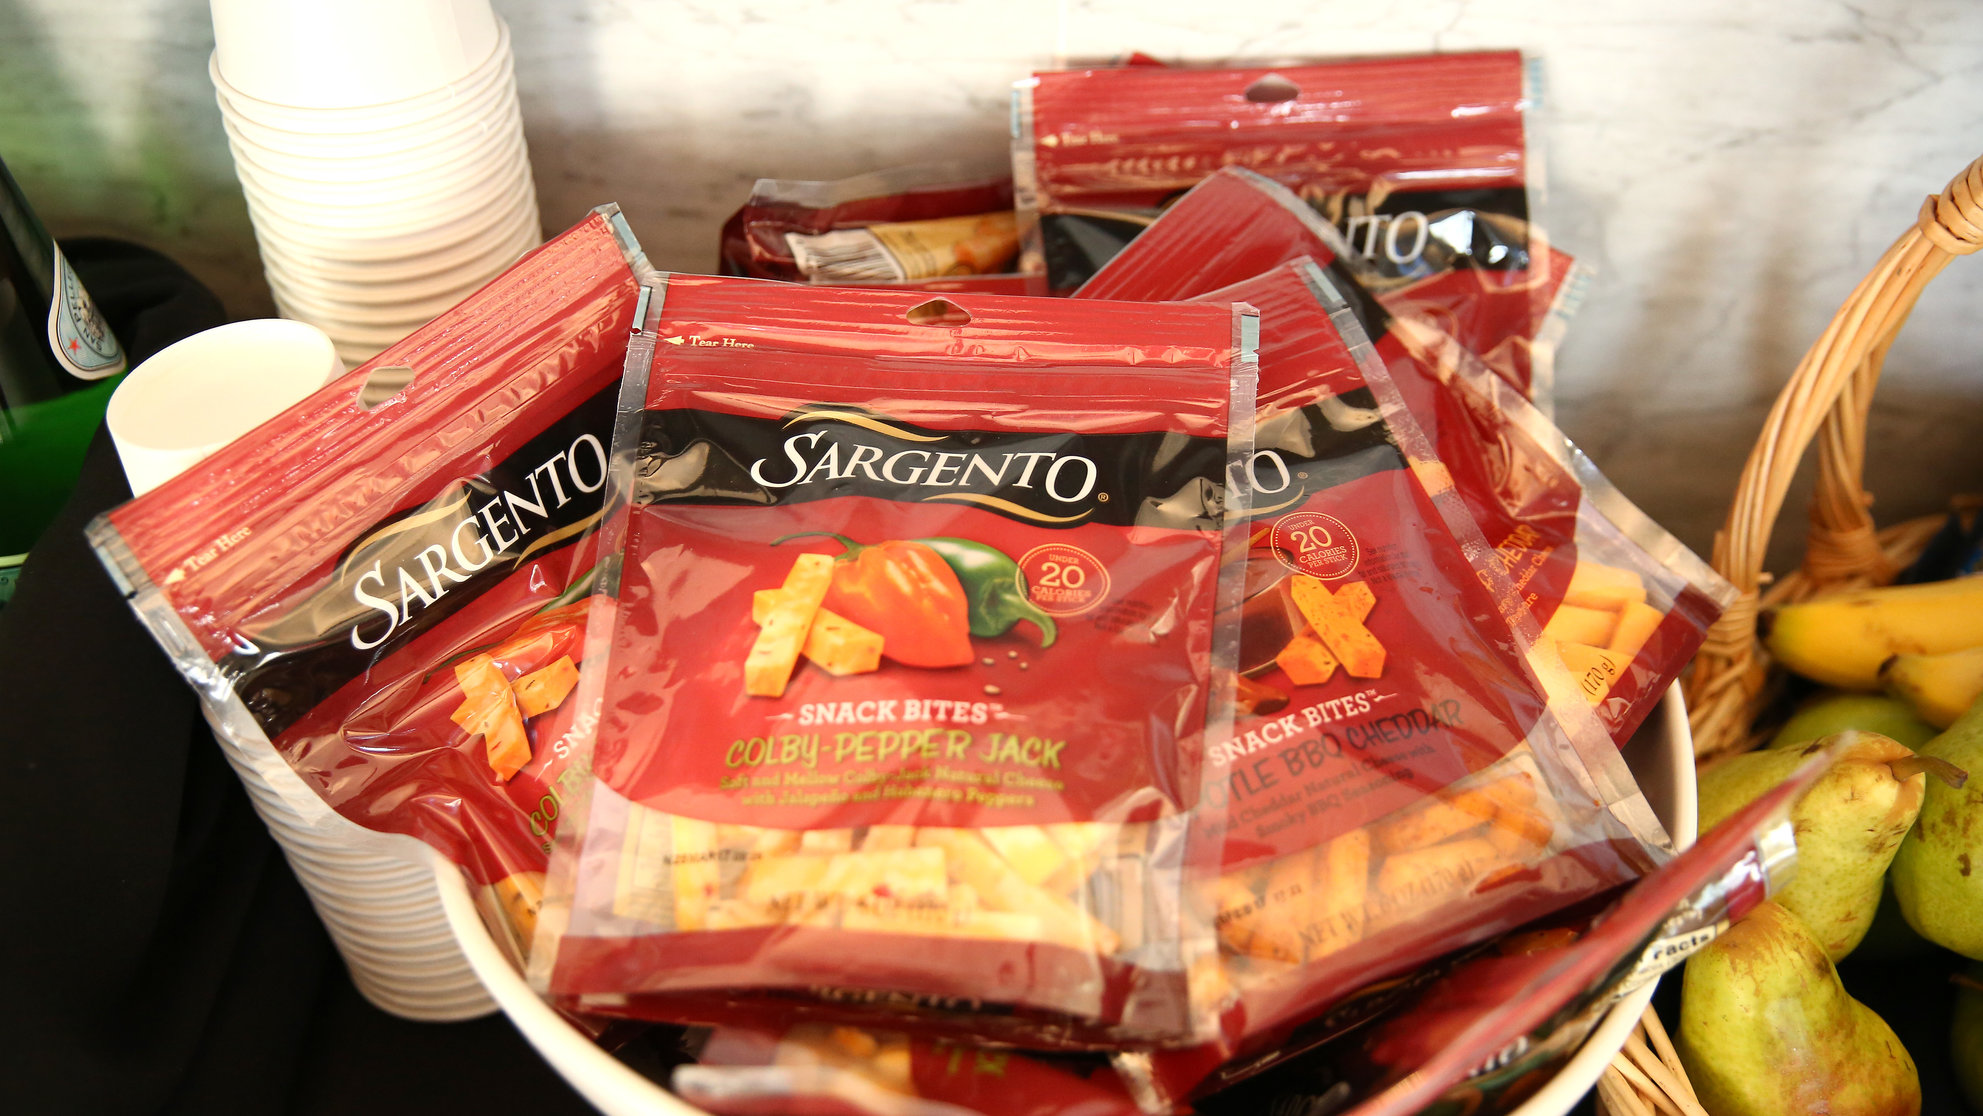 Cheesemaker Sargento Recalls 7 Kinds of Cheese on Listeria Concerns